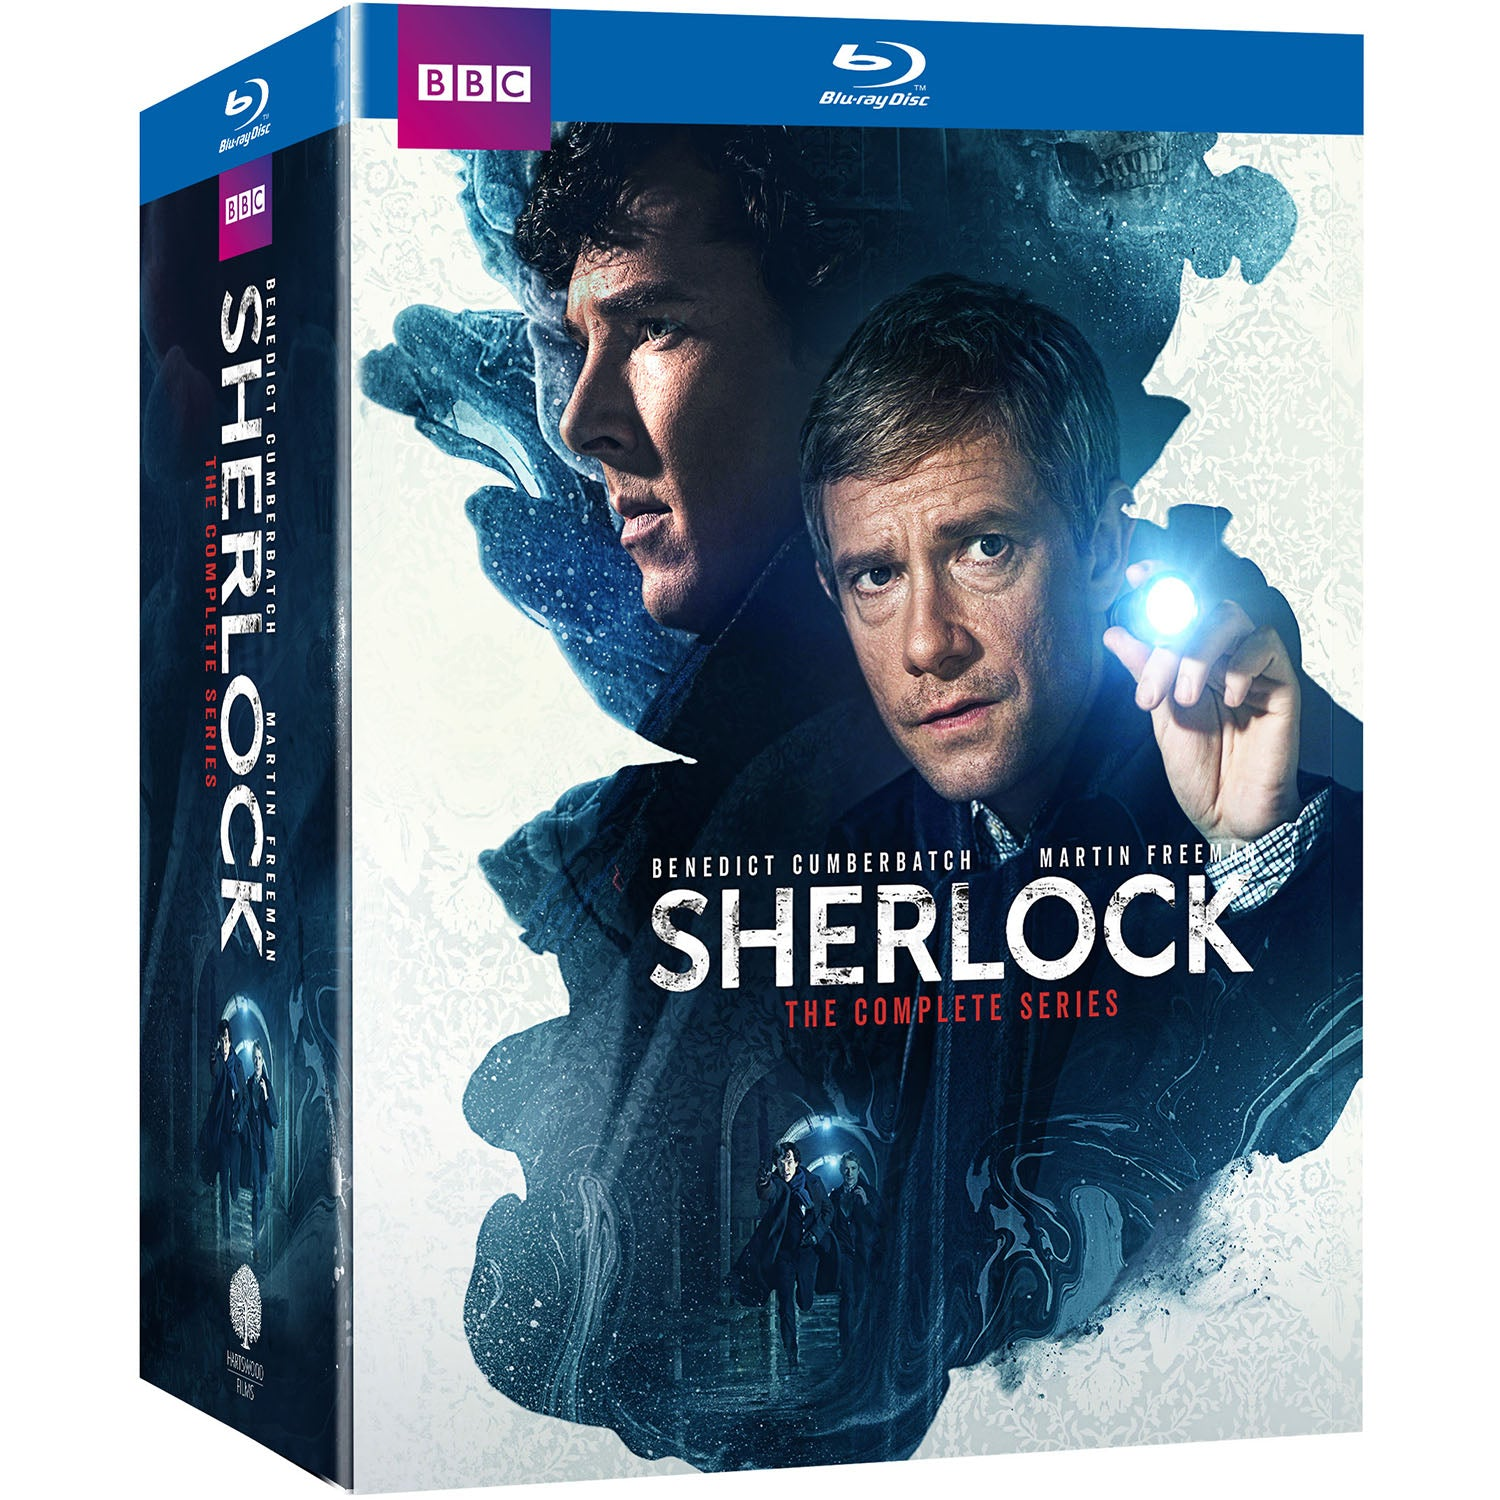 Sherlock: The Complete Series (Blu-Ray)